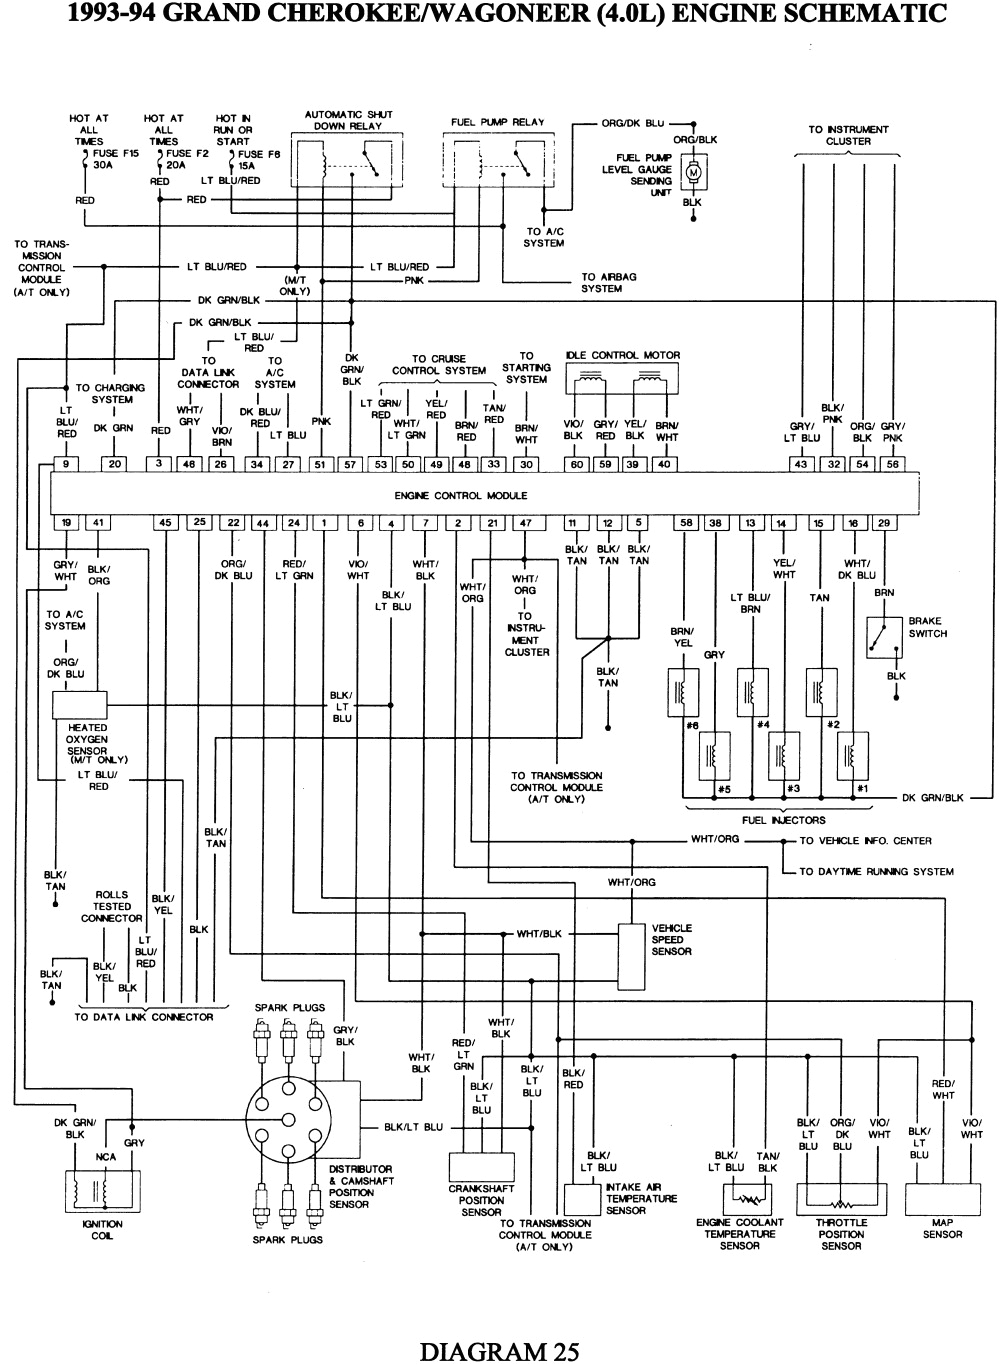 pcm for a 2000 jeep cherokee wiring diagram wiring diagram articlediagram for wiring on jeep grand